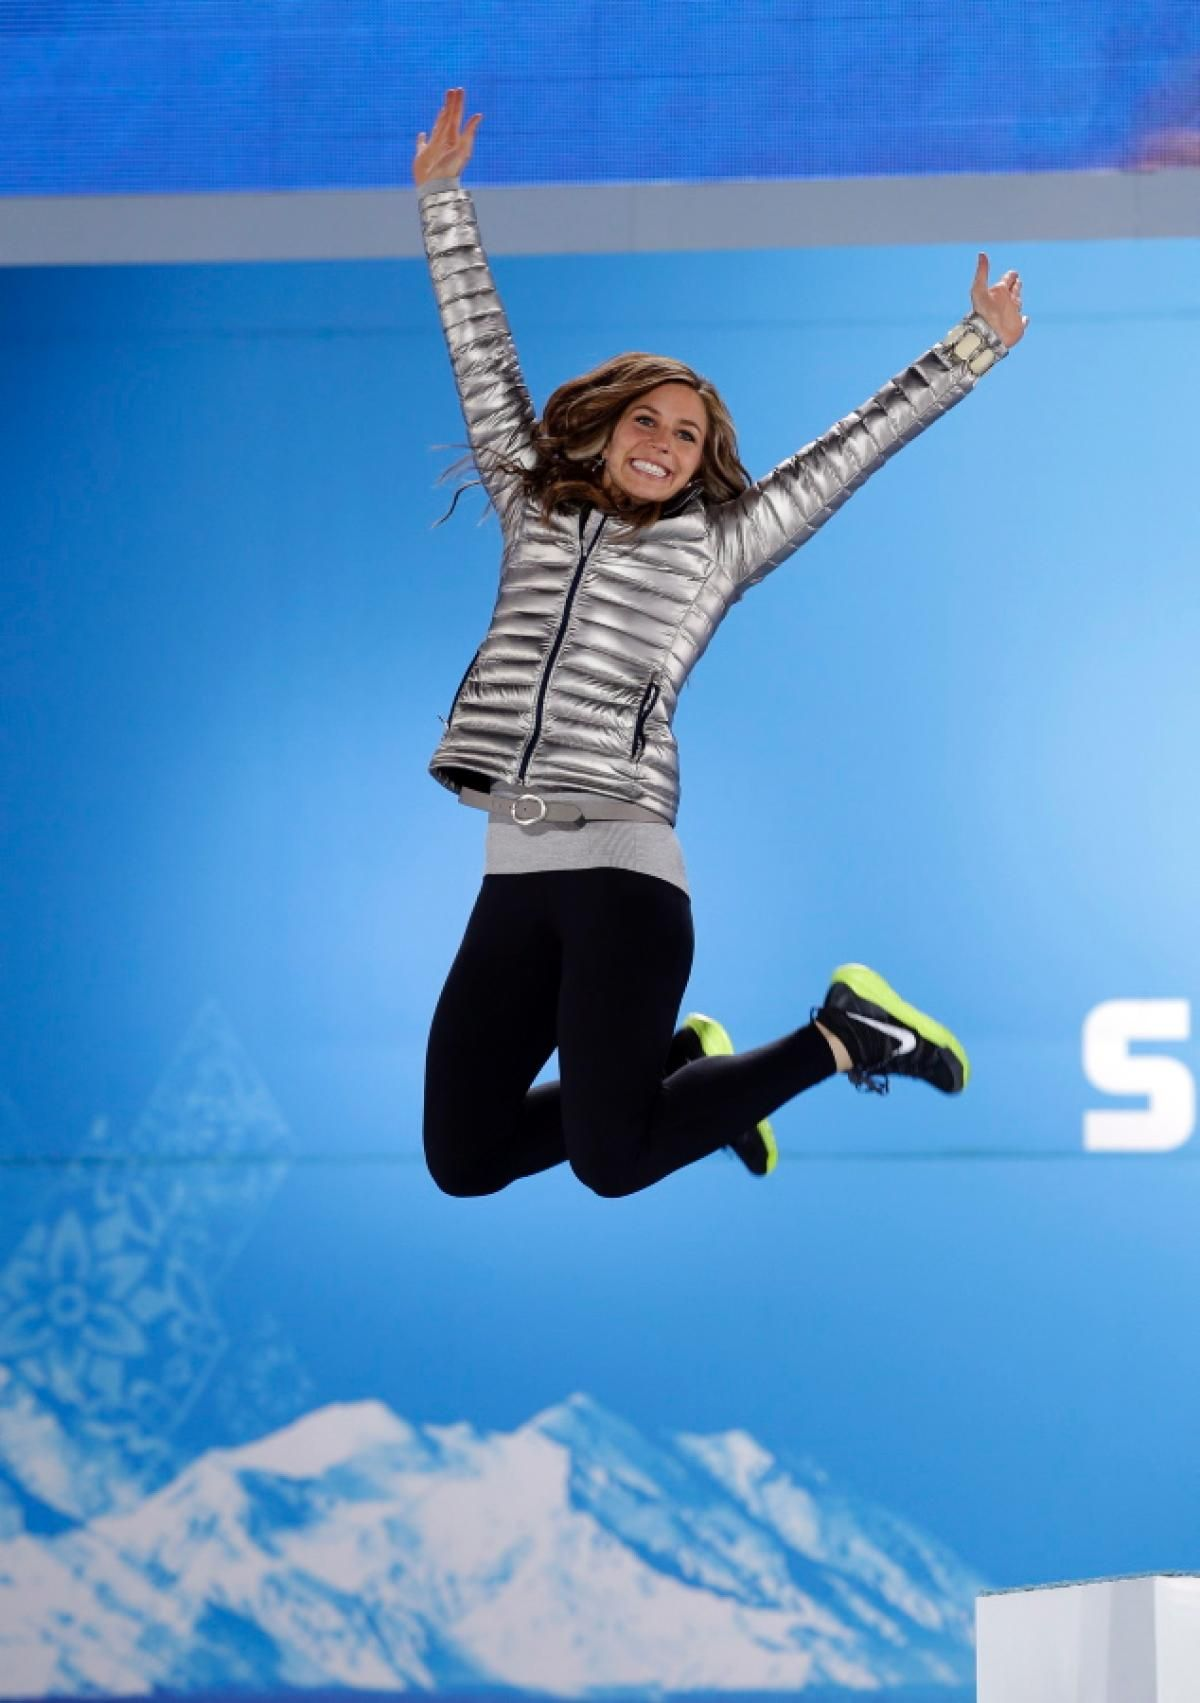 Olympic Photos Of The Day February 15